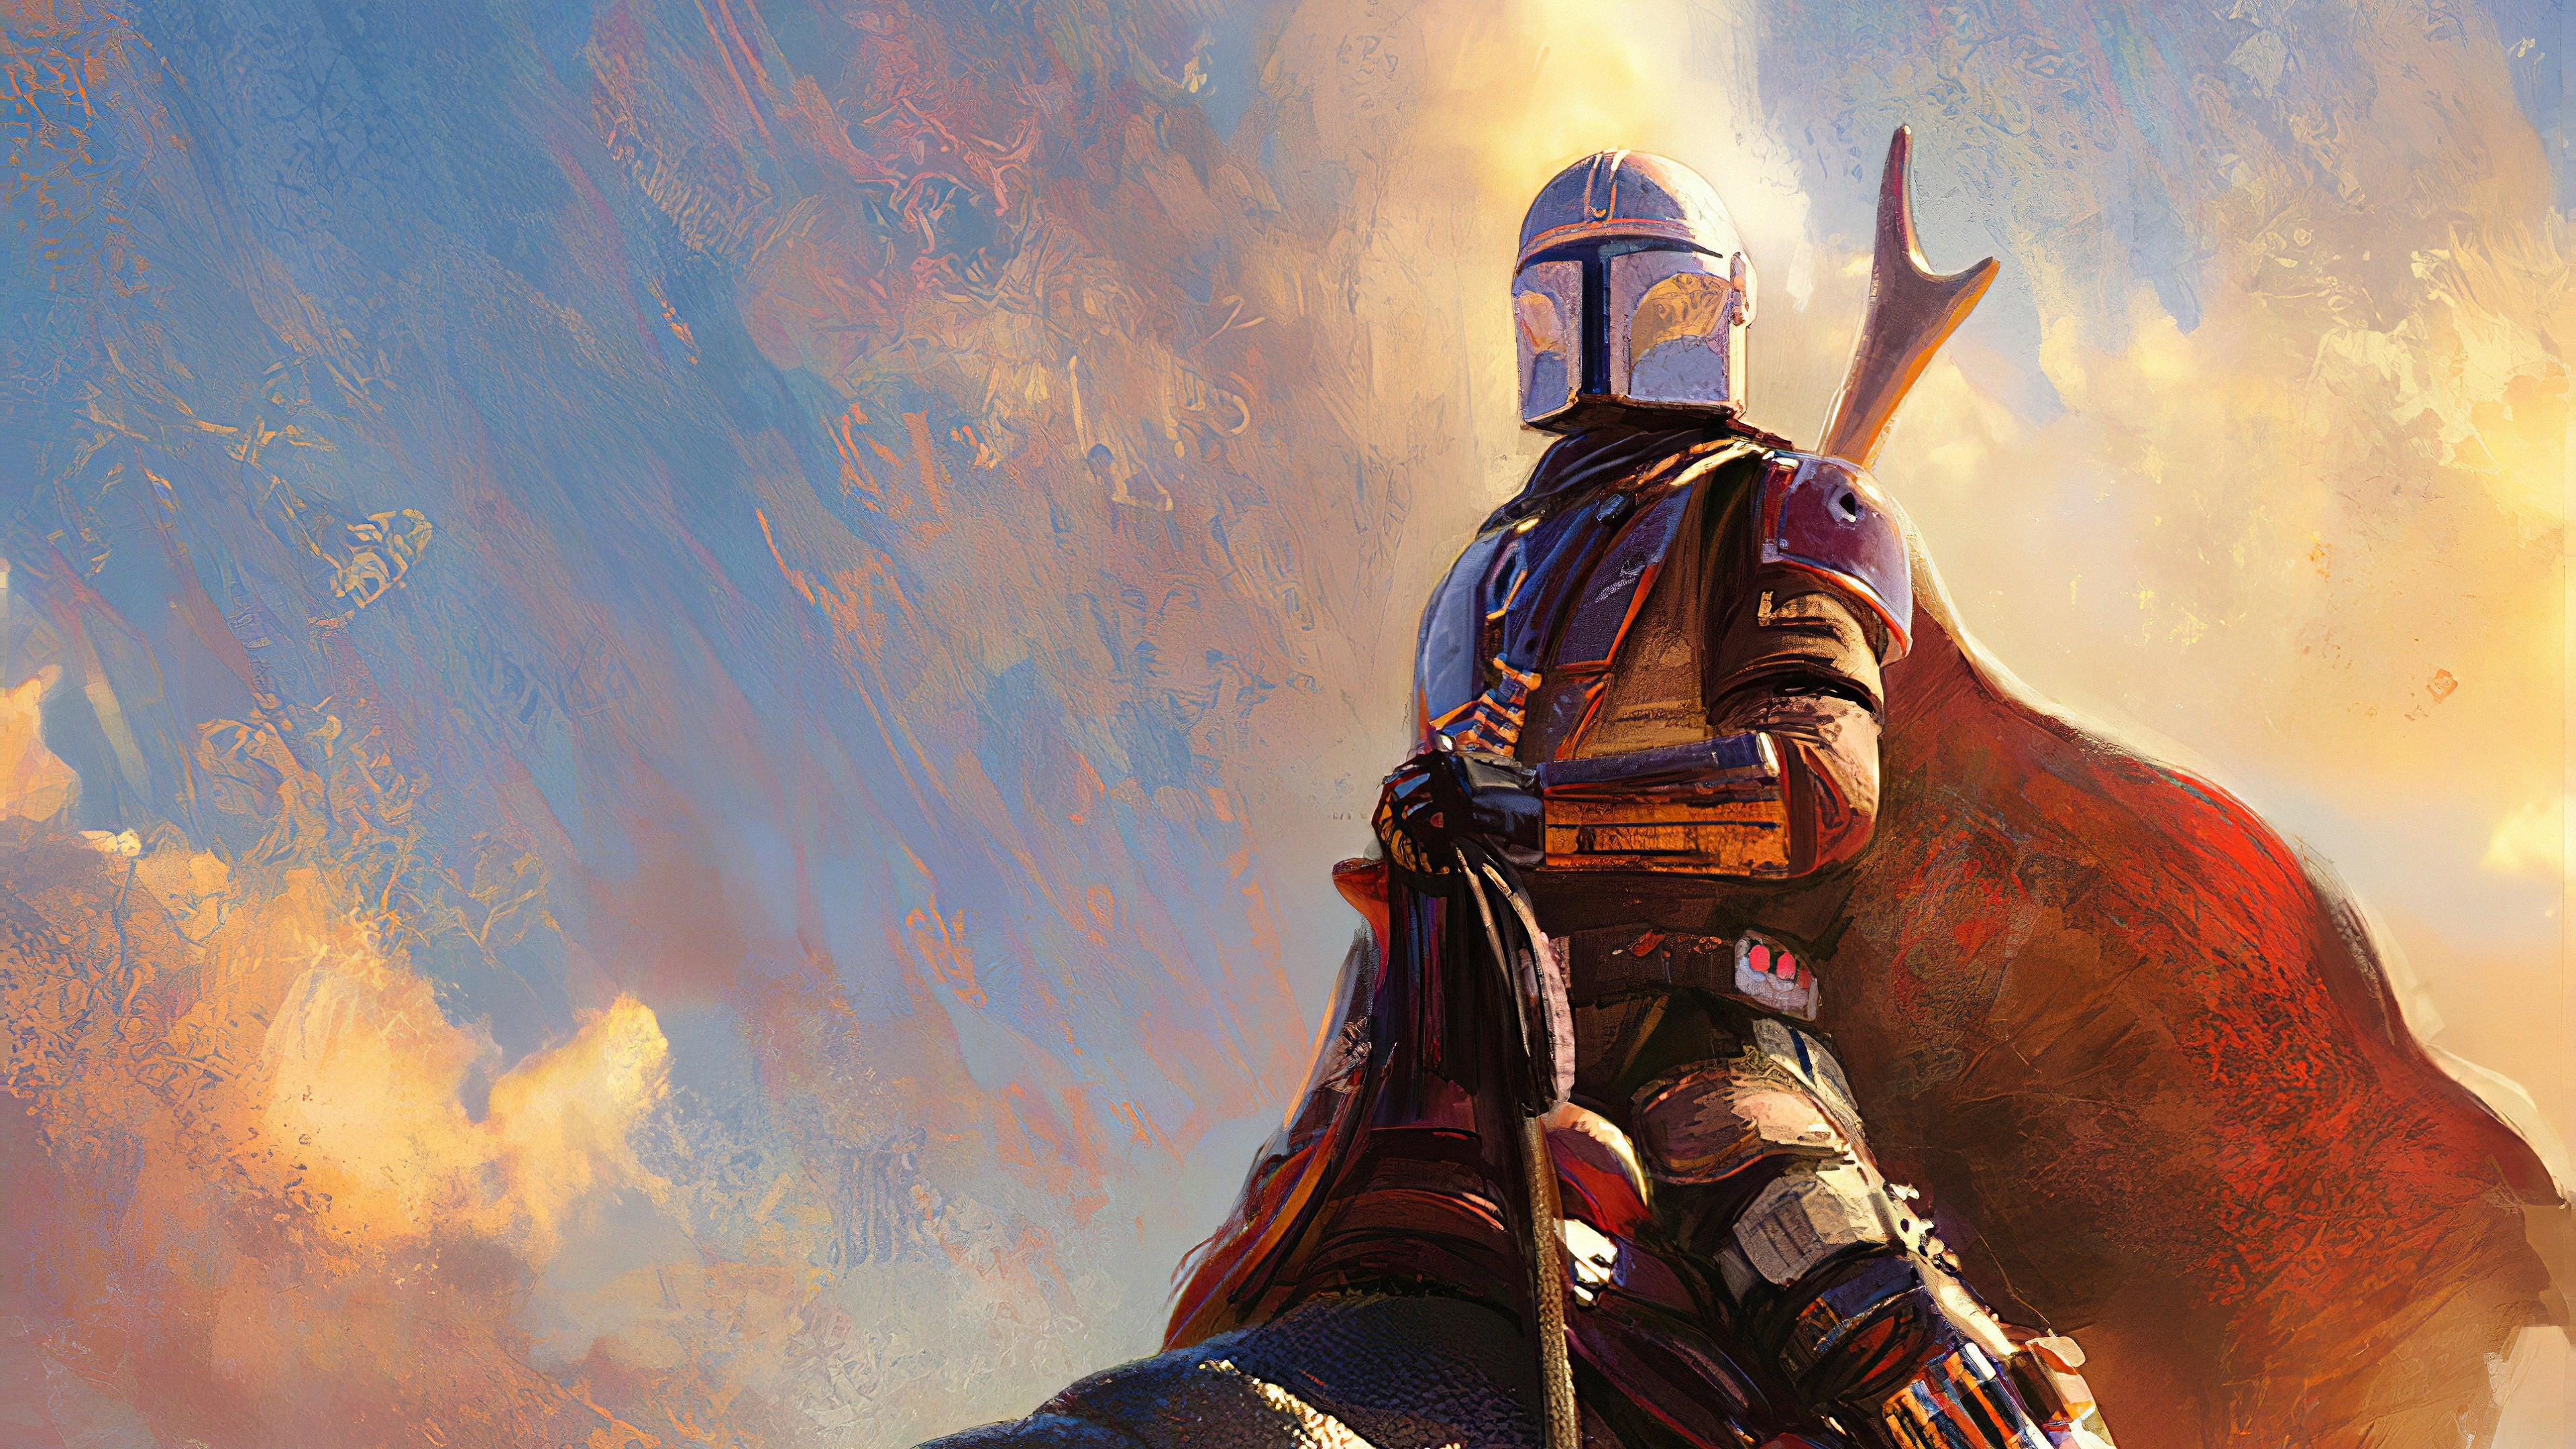 The Mandalorian 4k Wallpaper